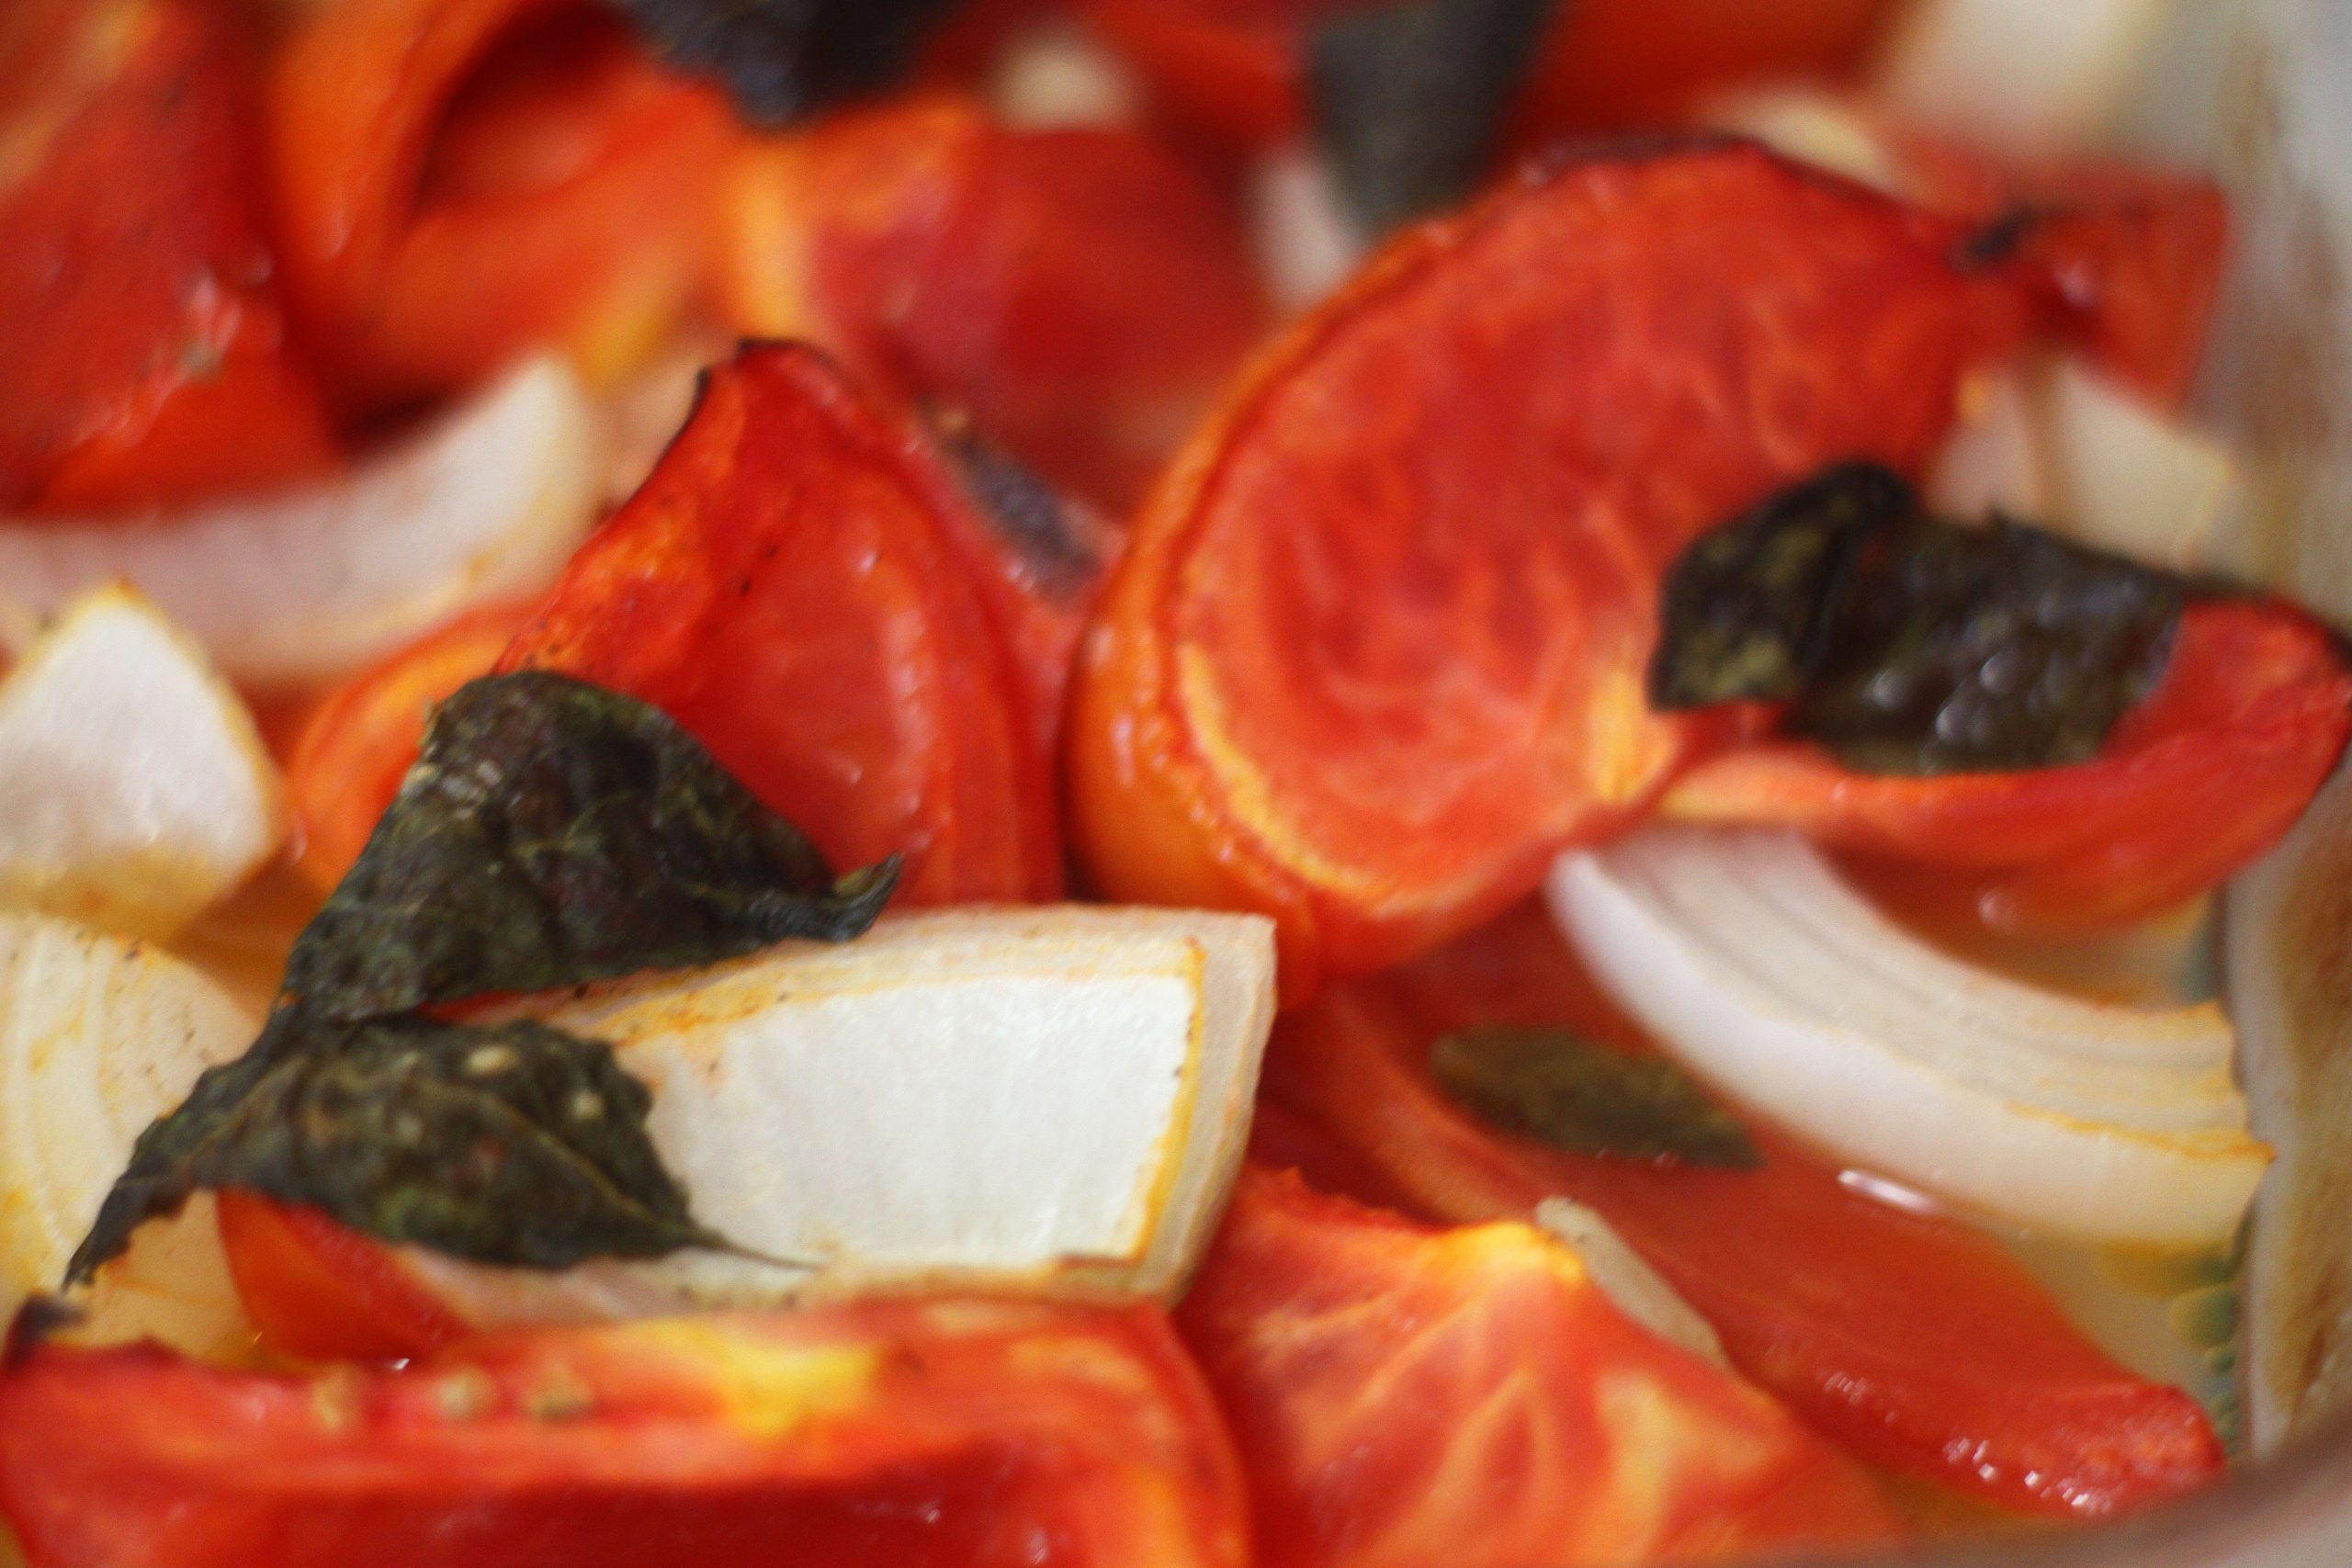 Oven-Baked Tomato Sauce with Fresh Tomatoes